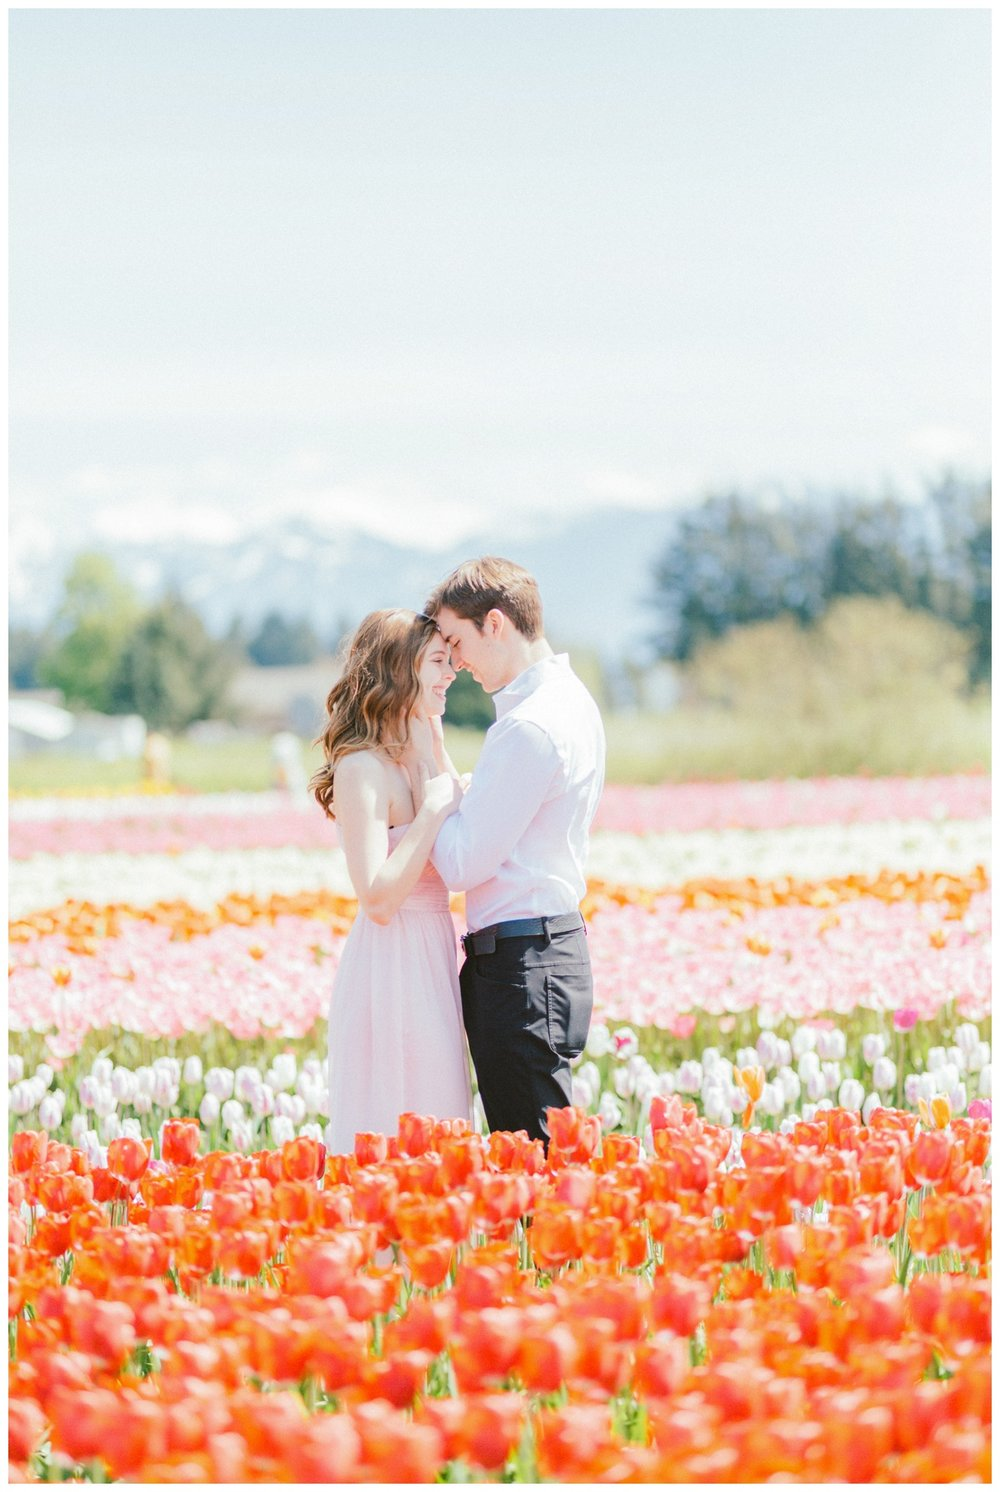 Mattie C. Hong Kong Vancouver Fine Art Wedding Prewedding Photographer 10.jpg